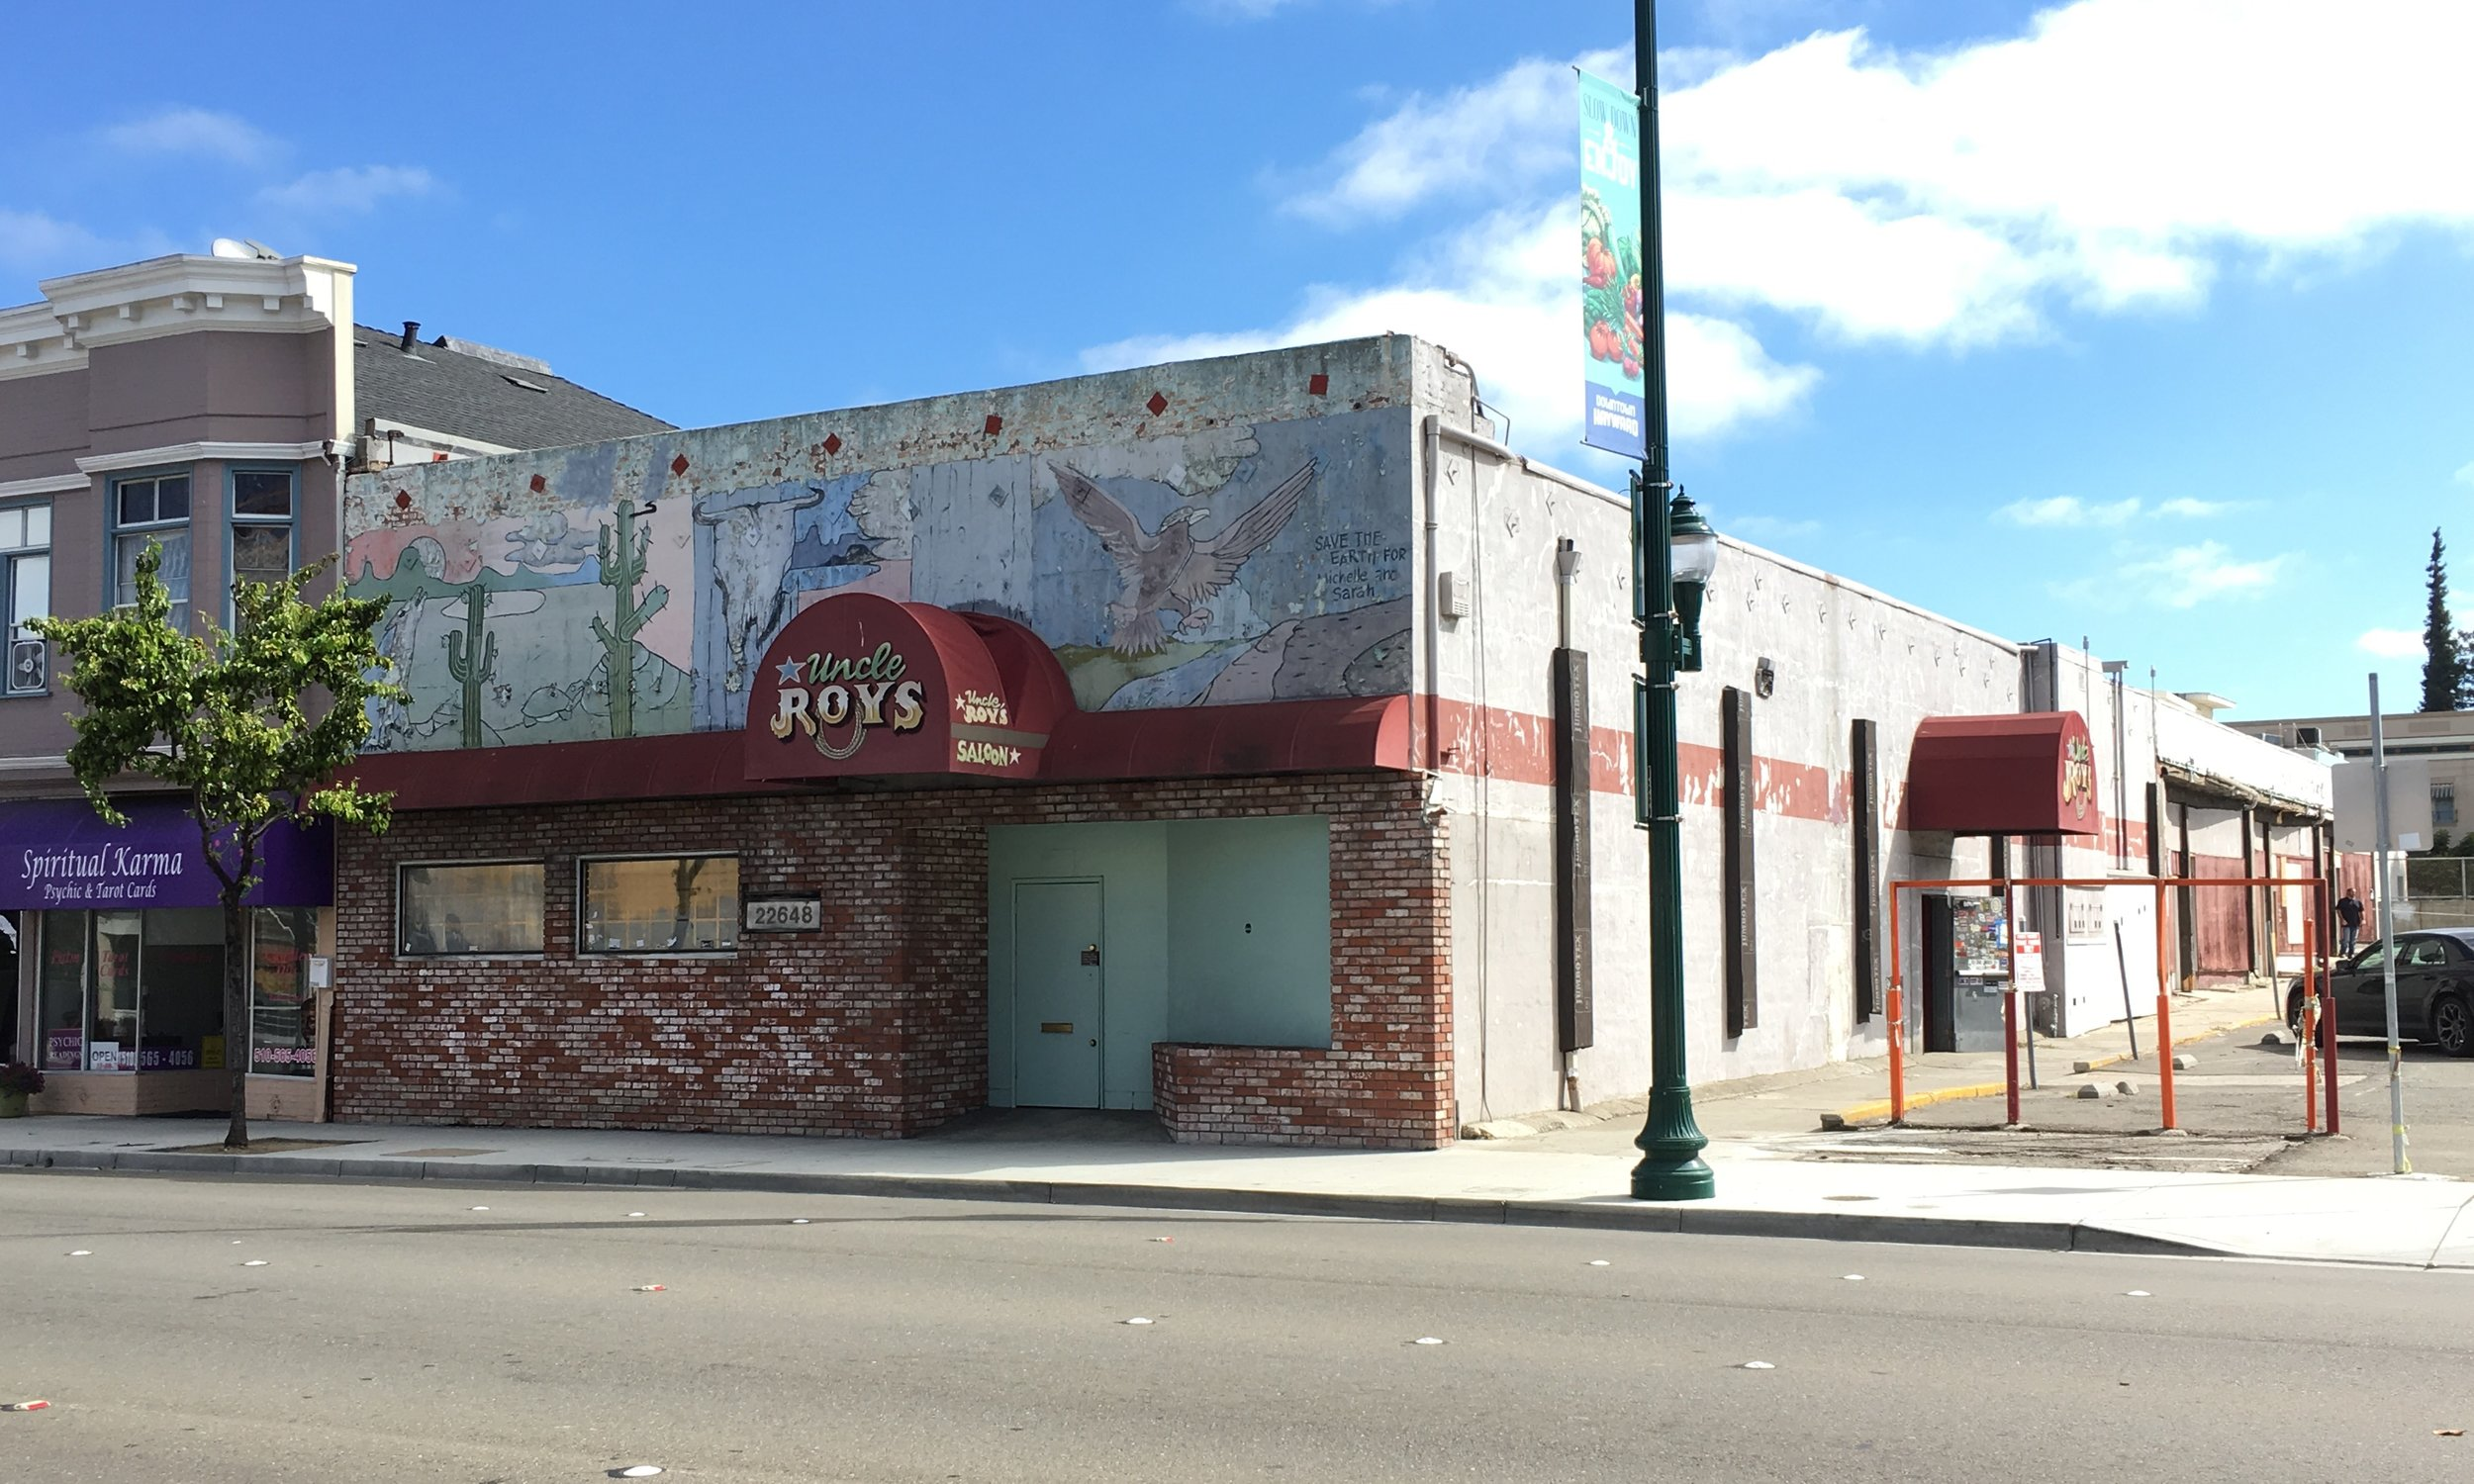 22648-22664 Mission Boulevard, Hayward, CA 94541 7,920 SF Property on 17,015 SF Parcel $1,200,000